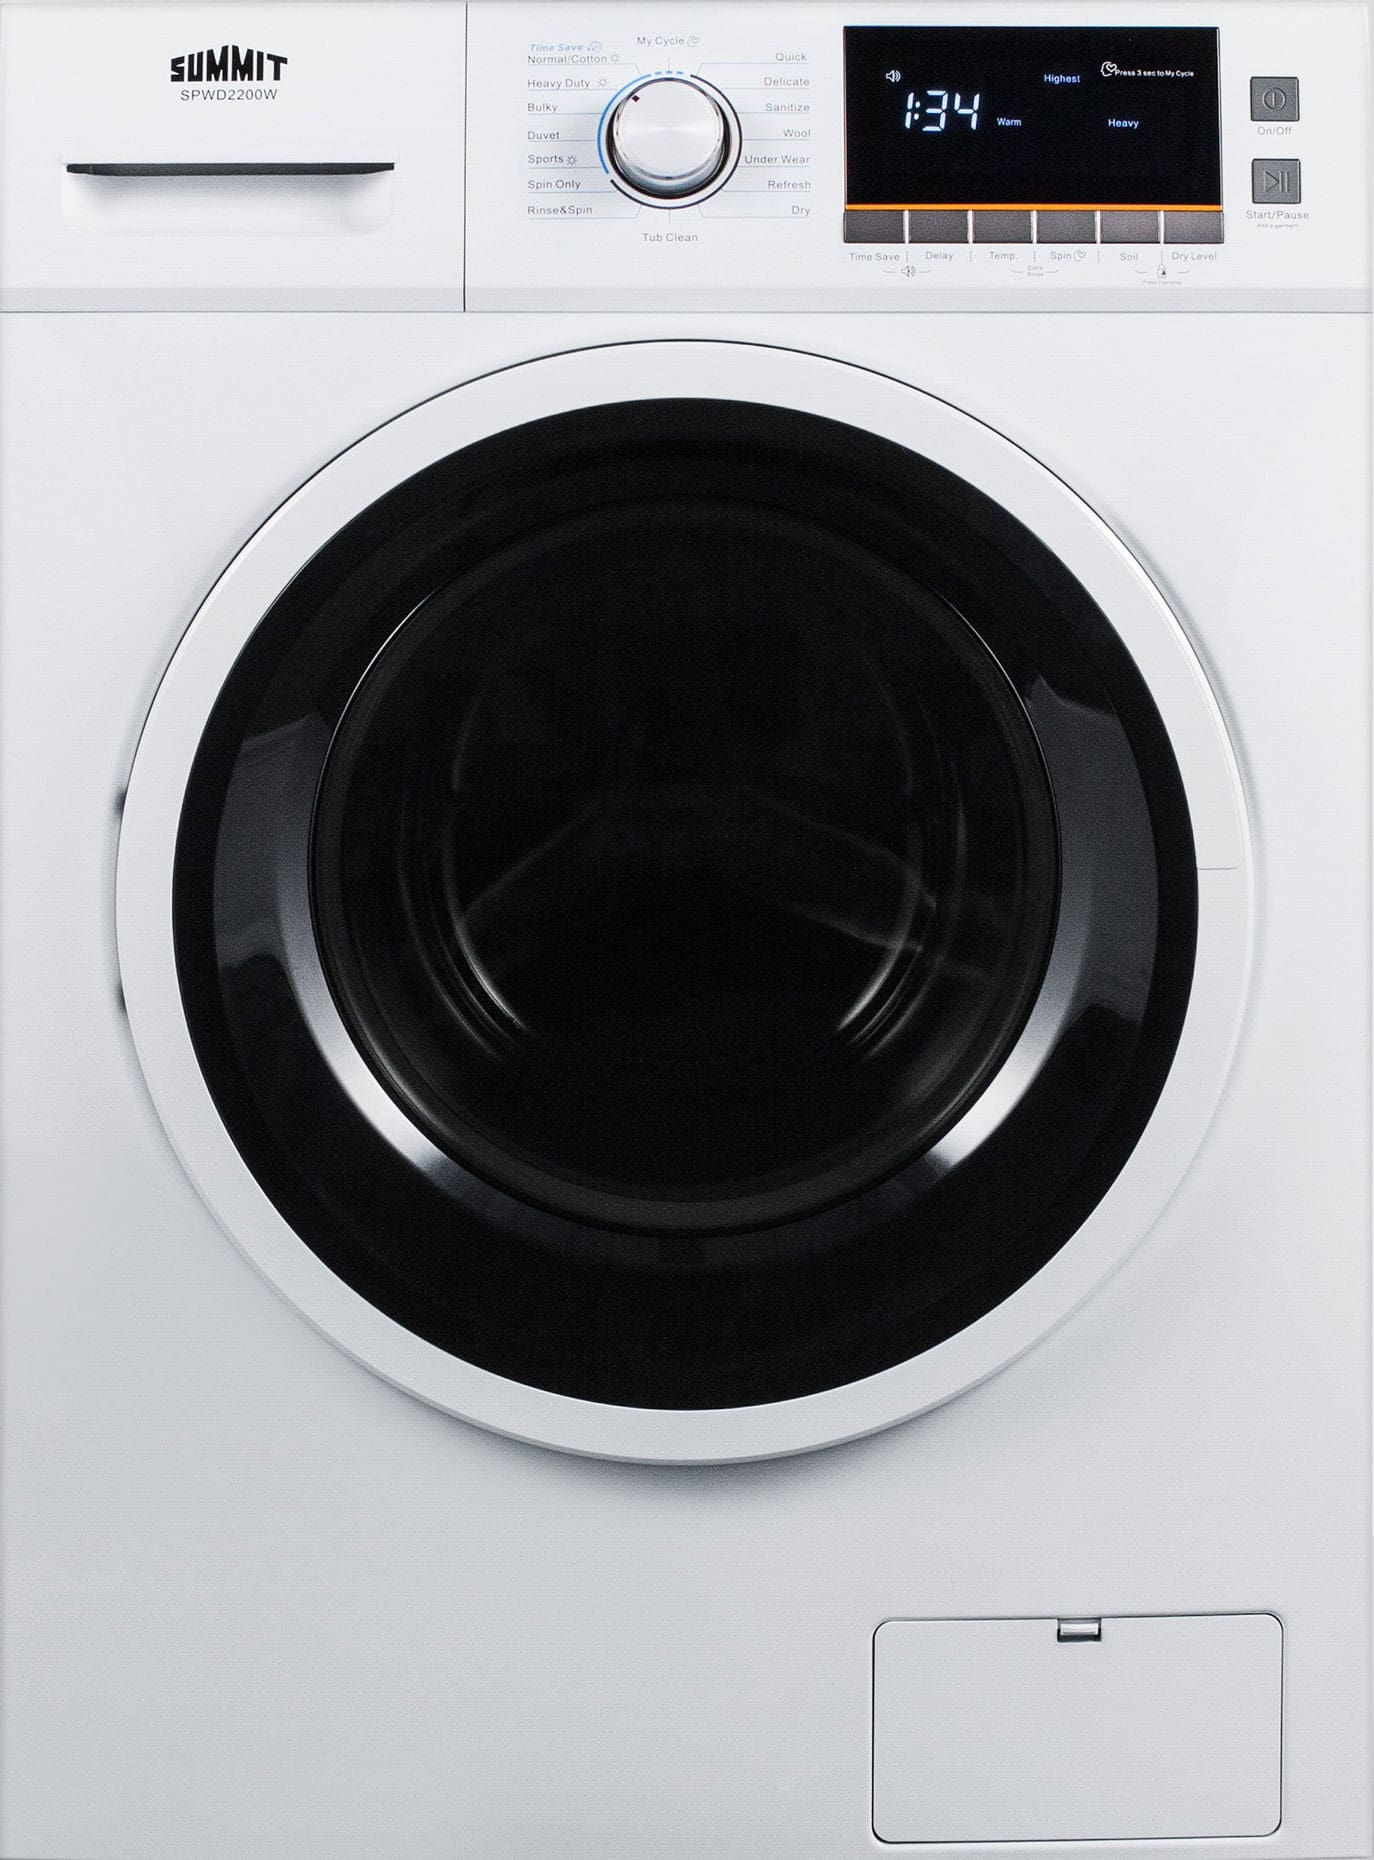 Miele stackable washer dryer ventless -  Front Load Washer Dryer Combo With 2 0 Cu Ft Capacity 7 Wash Cycles Sanitize Cycle 4 Temperature Settings 1 200 Rpm Spin Speed And Ventless Drying